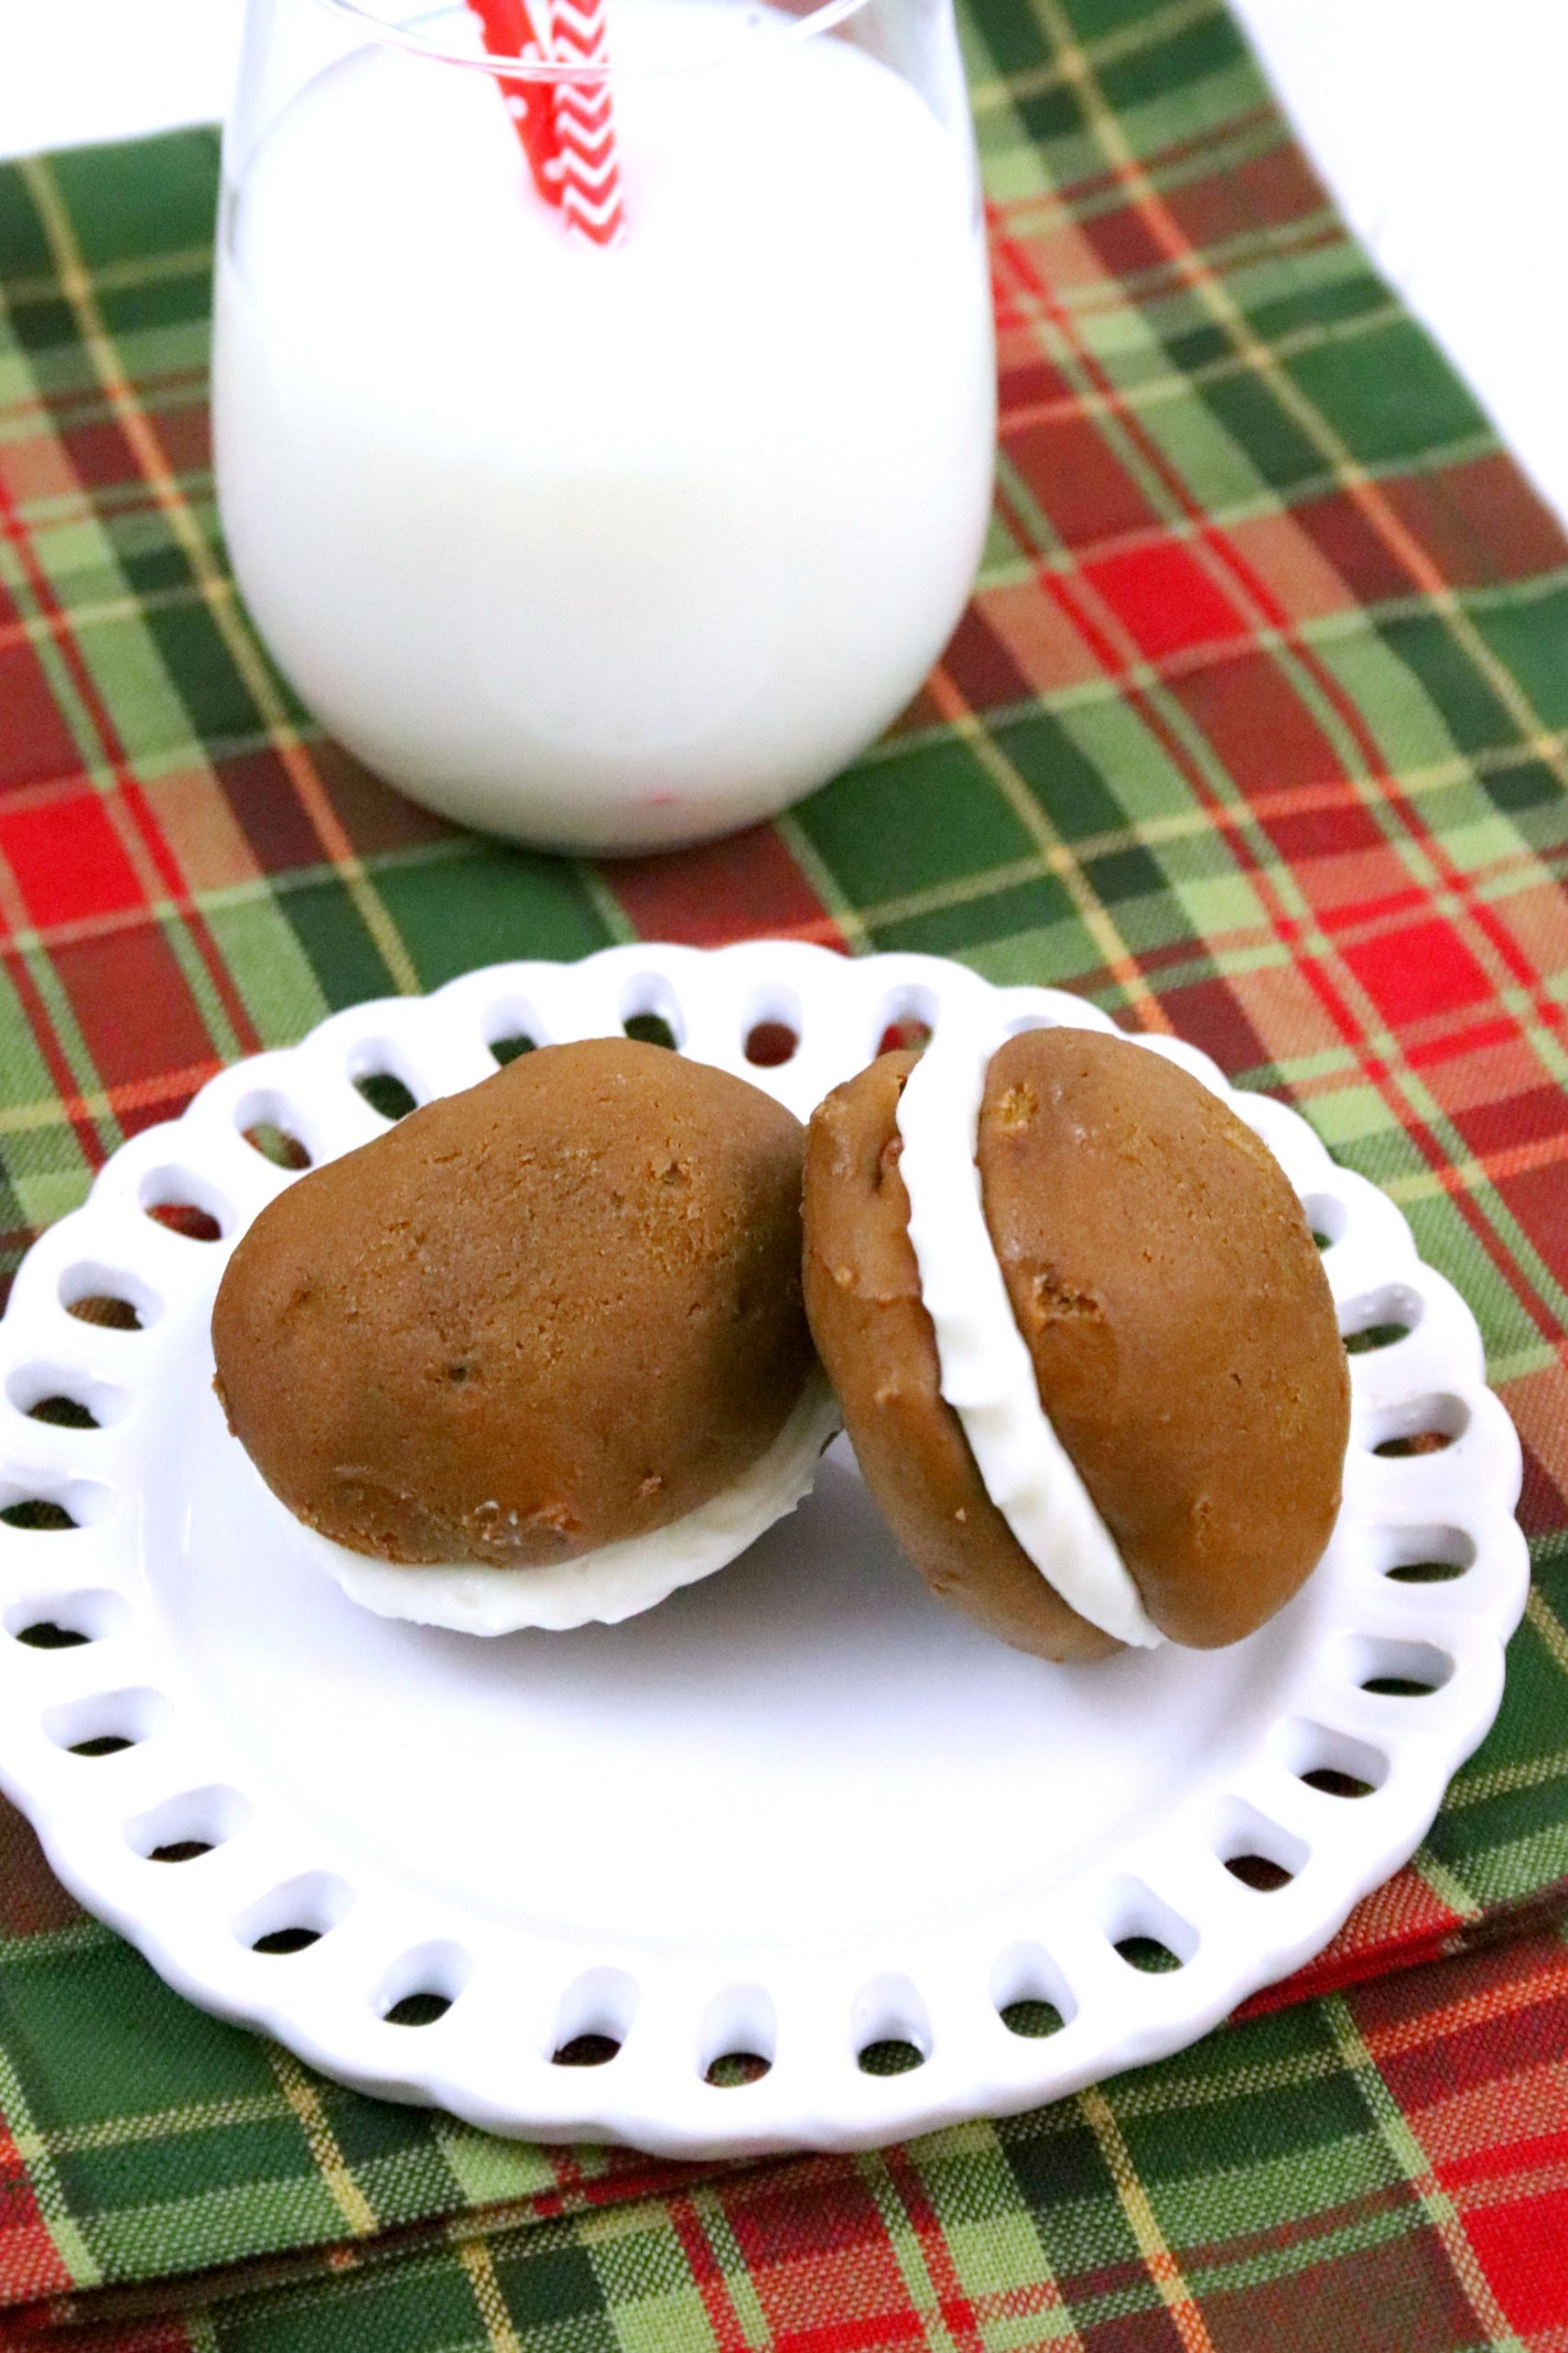 Whoopie pies made from scratch.